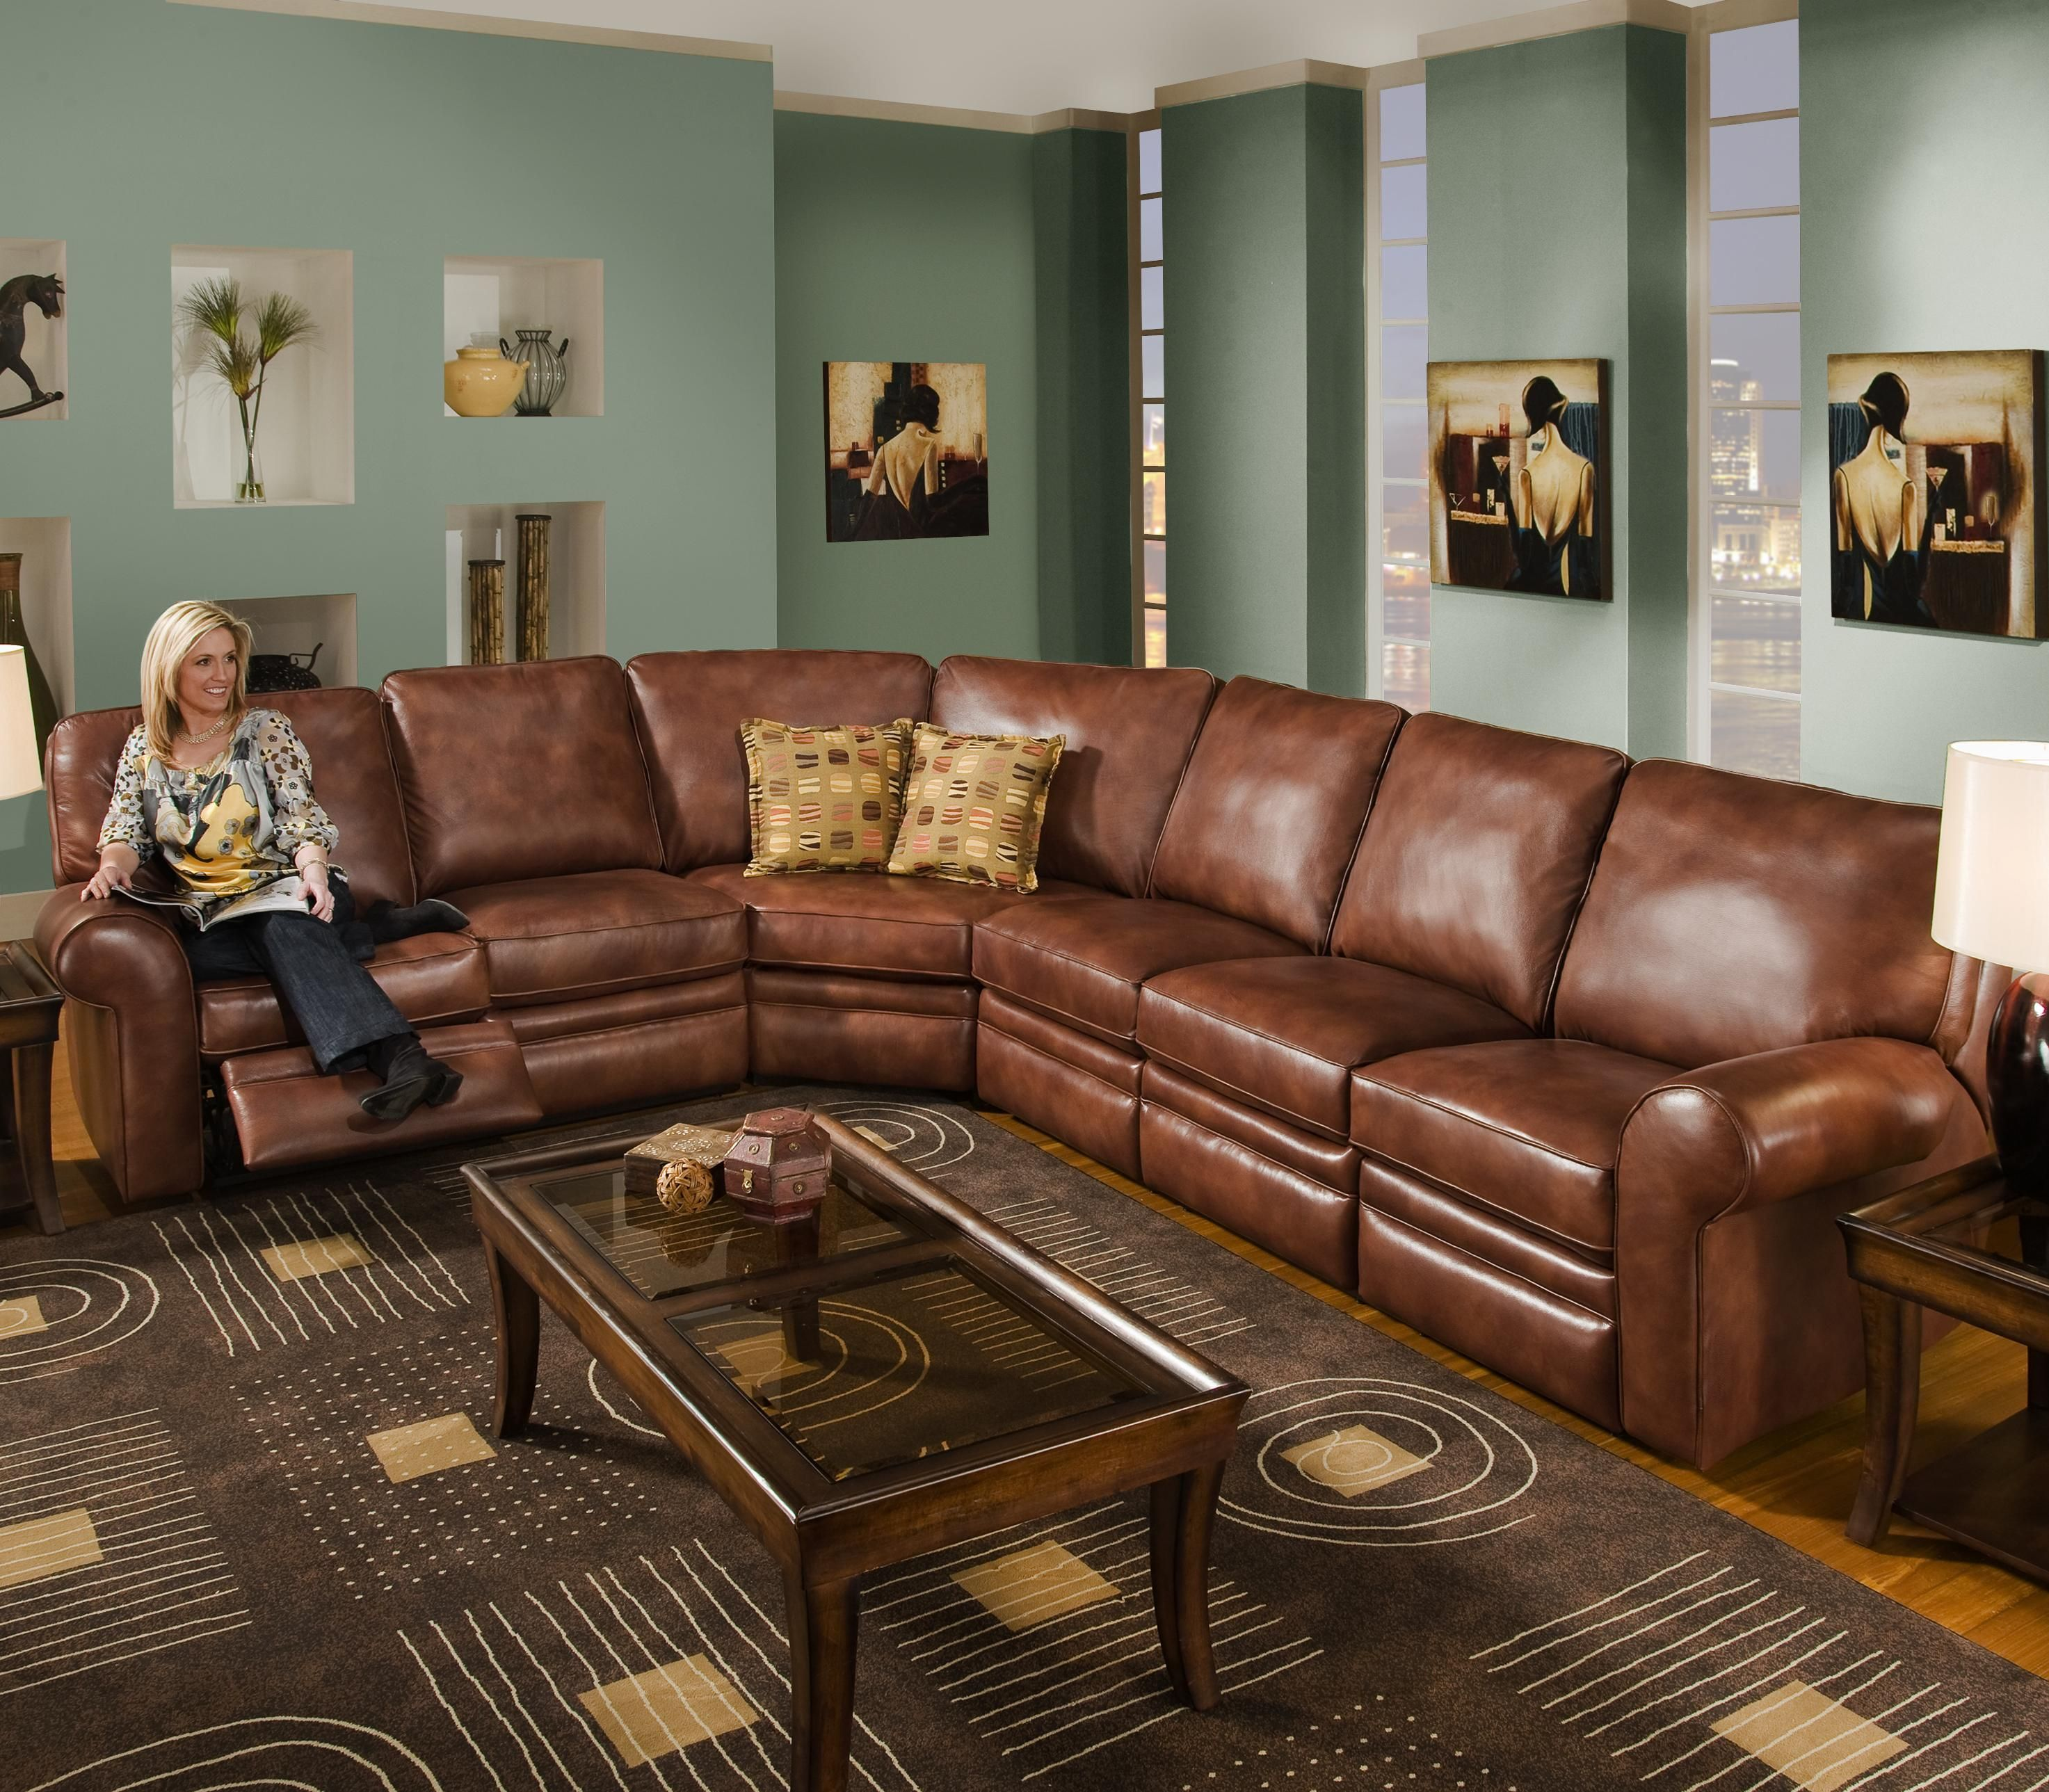 Reclining sectional seats 6 leather wolf furniture for for Sectional sofas wolf furniture